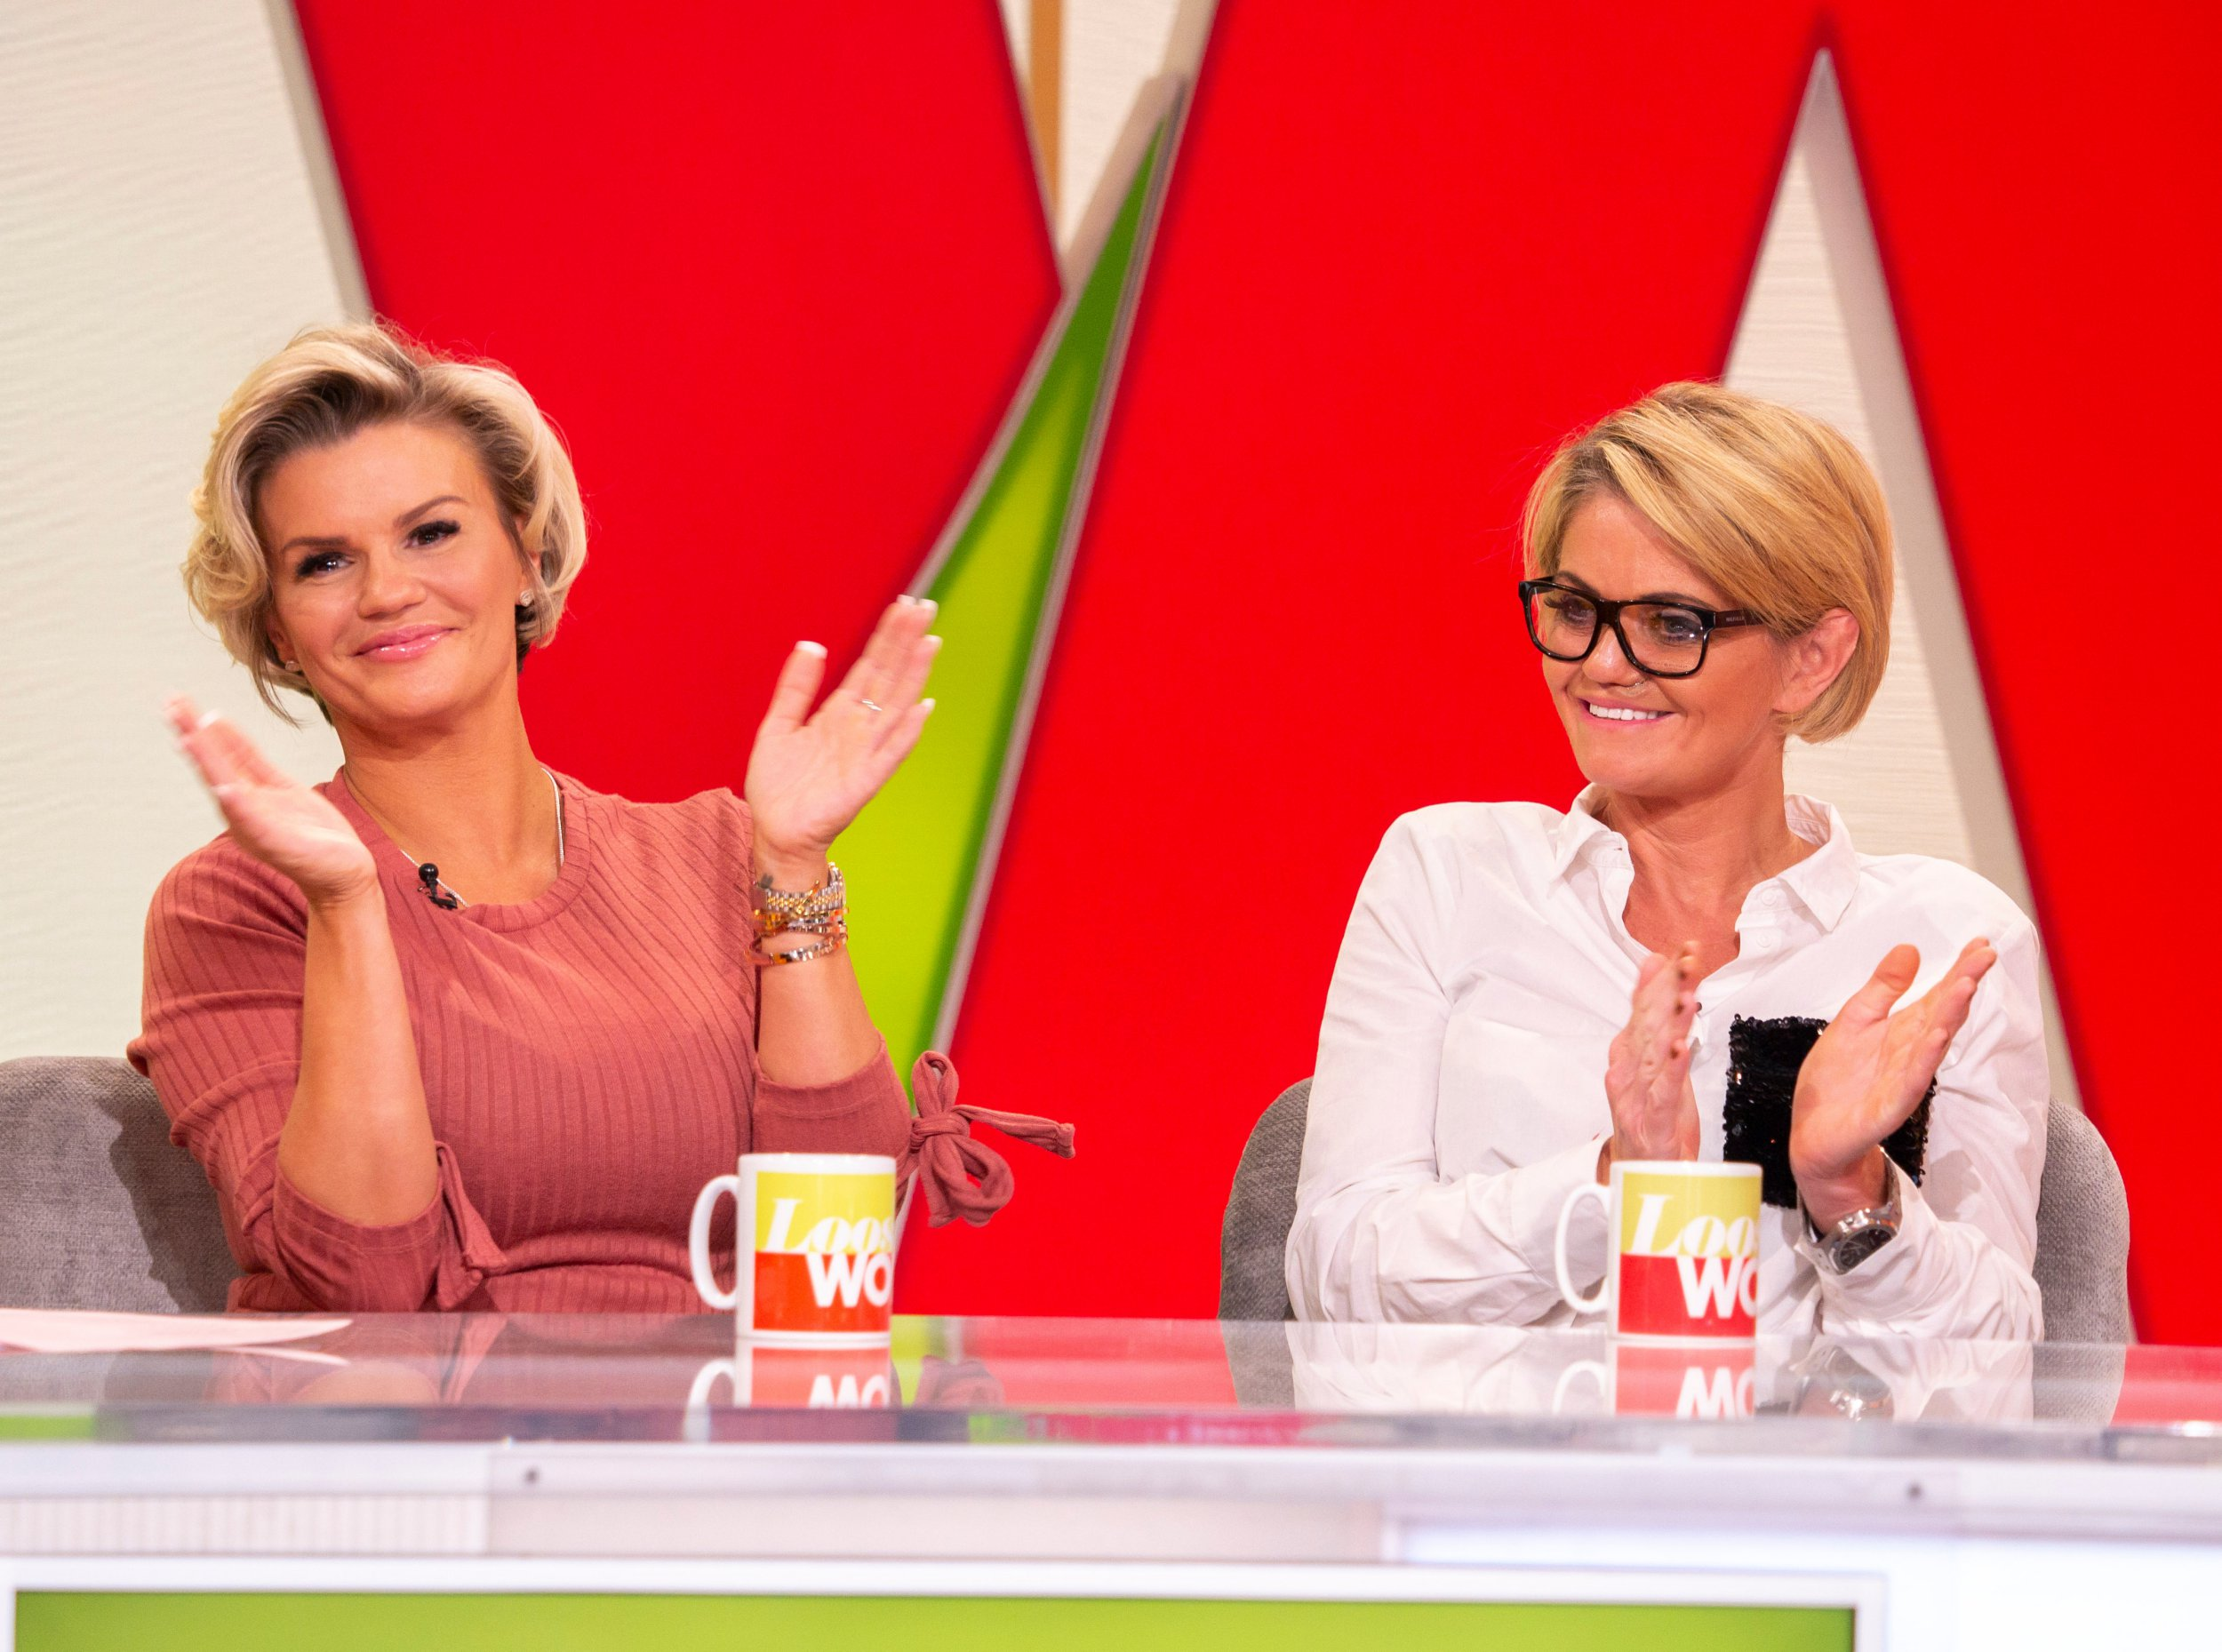 Editorial use only Mandatory Credit: Photo by S Meddle/ITV/REX/Shutterstock (9715006ad) Kerry Katona and Danniella Westbrook 'Loose Women' TV show, London, UK - 13 Jun 2018 Celeb guests: Kerry Katona, Danniella Westbrook and her son Kai The pair will be joining us in the studio to discuss their moving chat and Danniella will tell us what happened after the video was filmed. Has Danniella relapsed? And will she be seeking professional help? Her son Kai will be in the audience to tell us how it has been for him being his mum's carer for the last four years and what his fears are for her future.